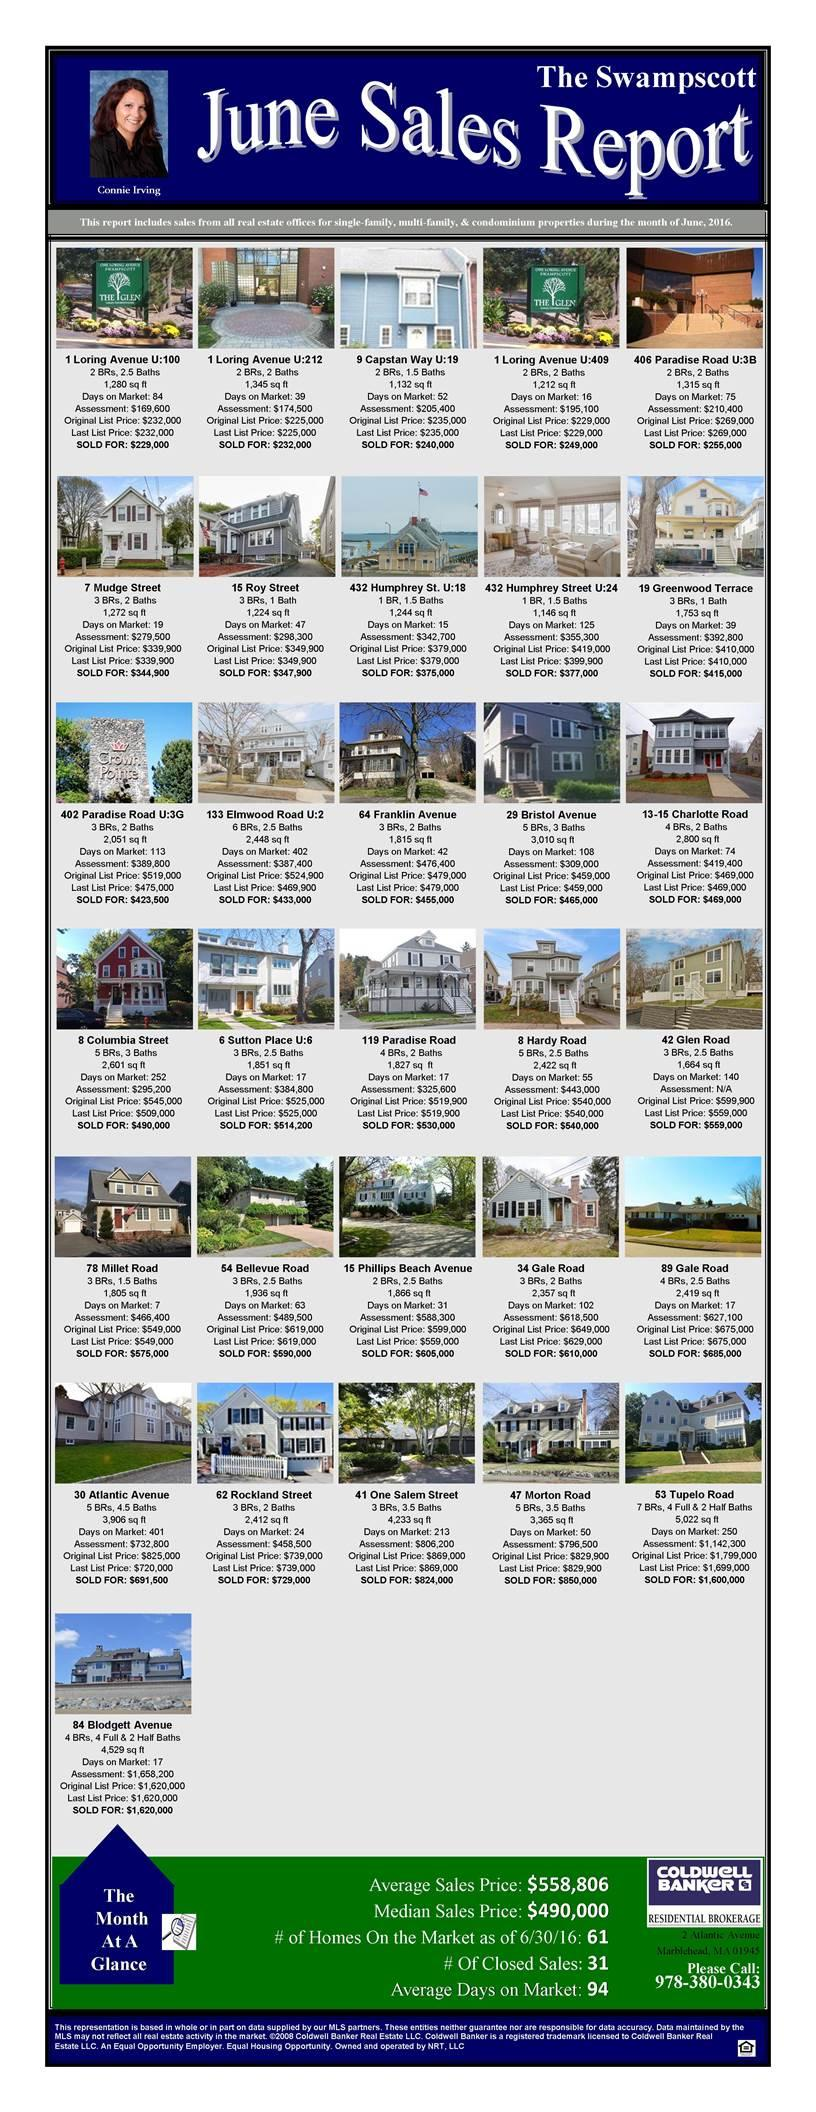 Swampscott Sales Report June 2016